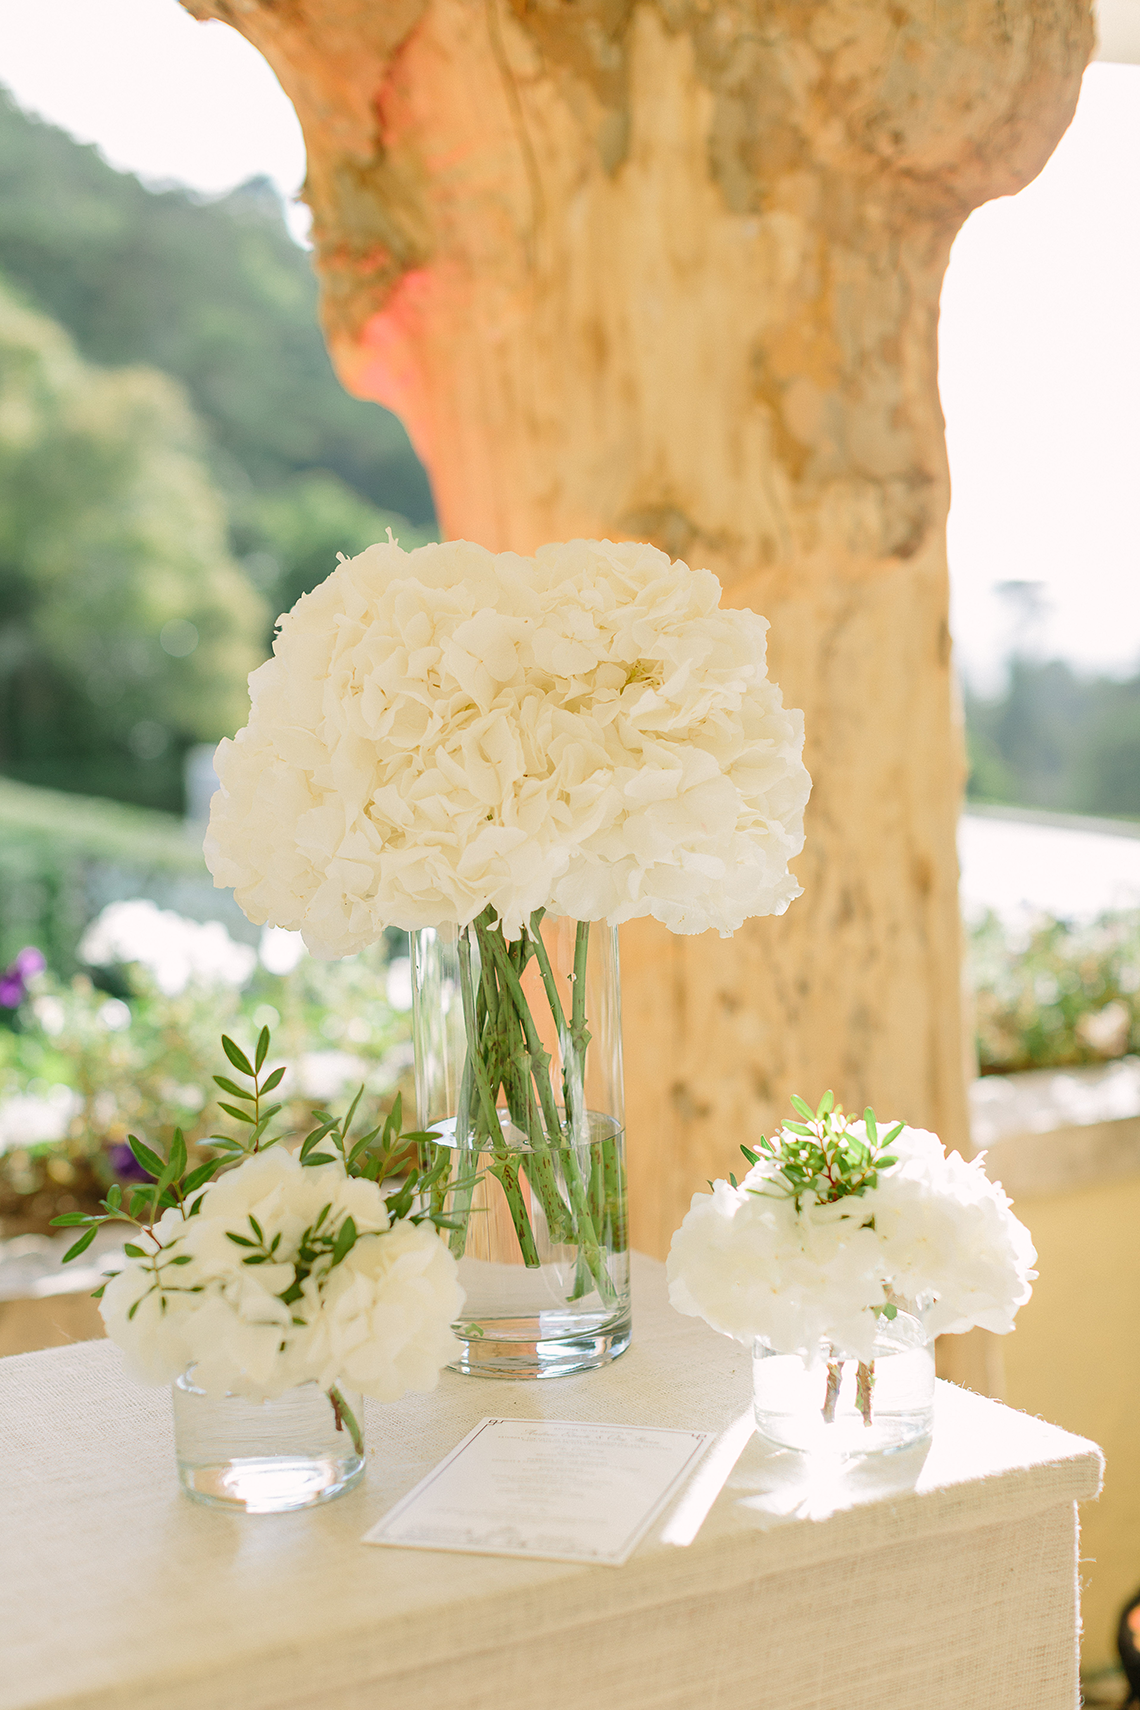 Lavish Lemon Inspired Portugal Destination Wedding – Portugal Wedding Photographer 26